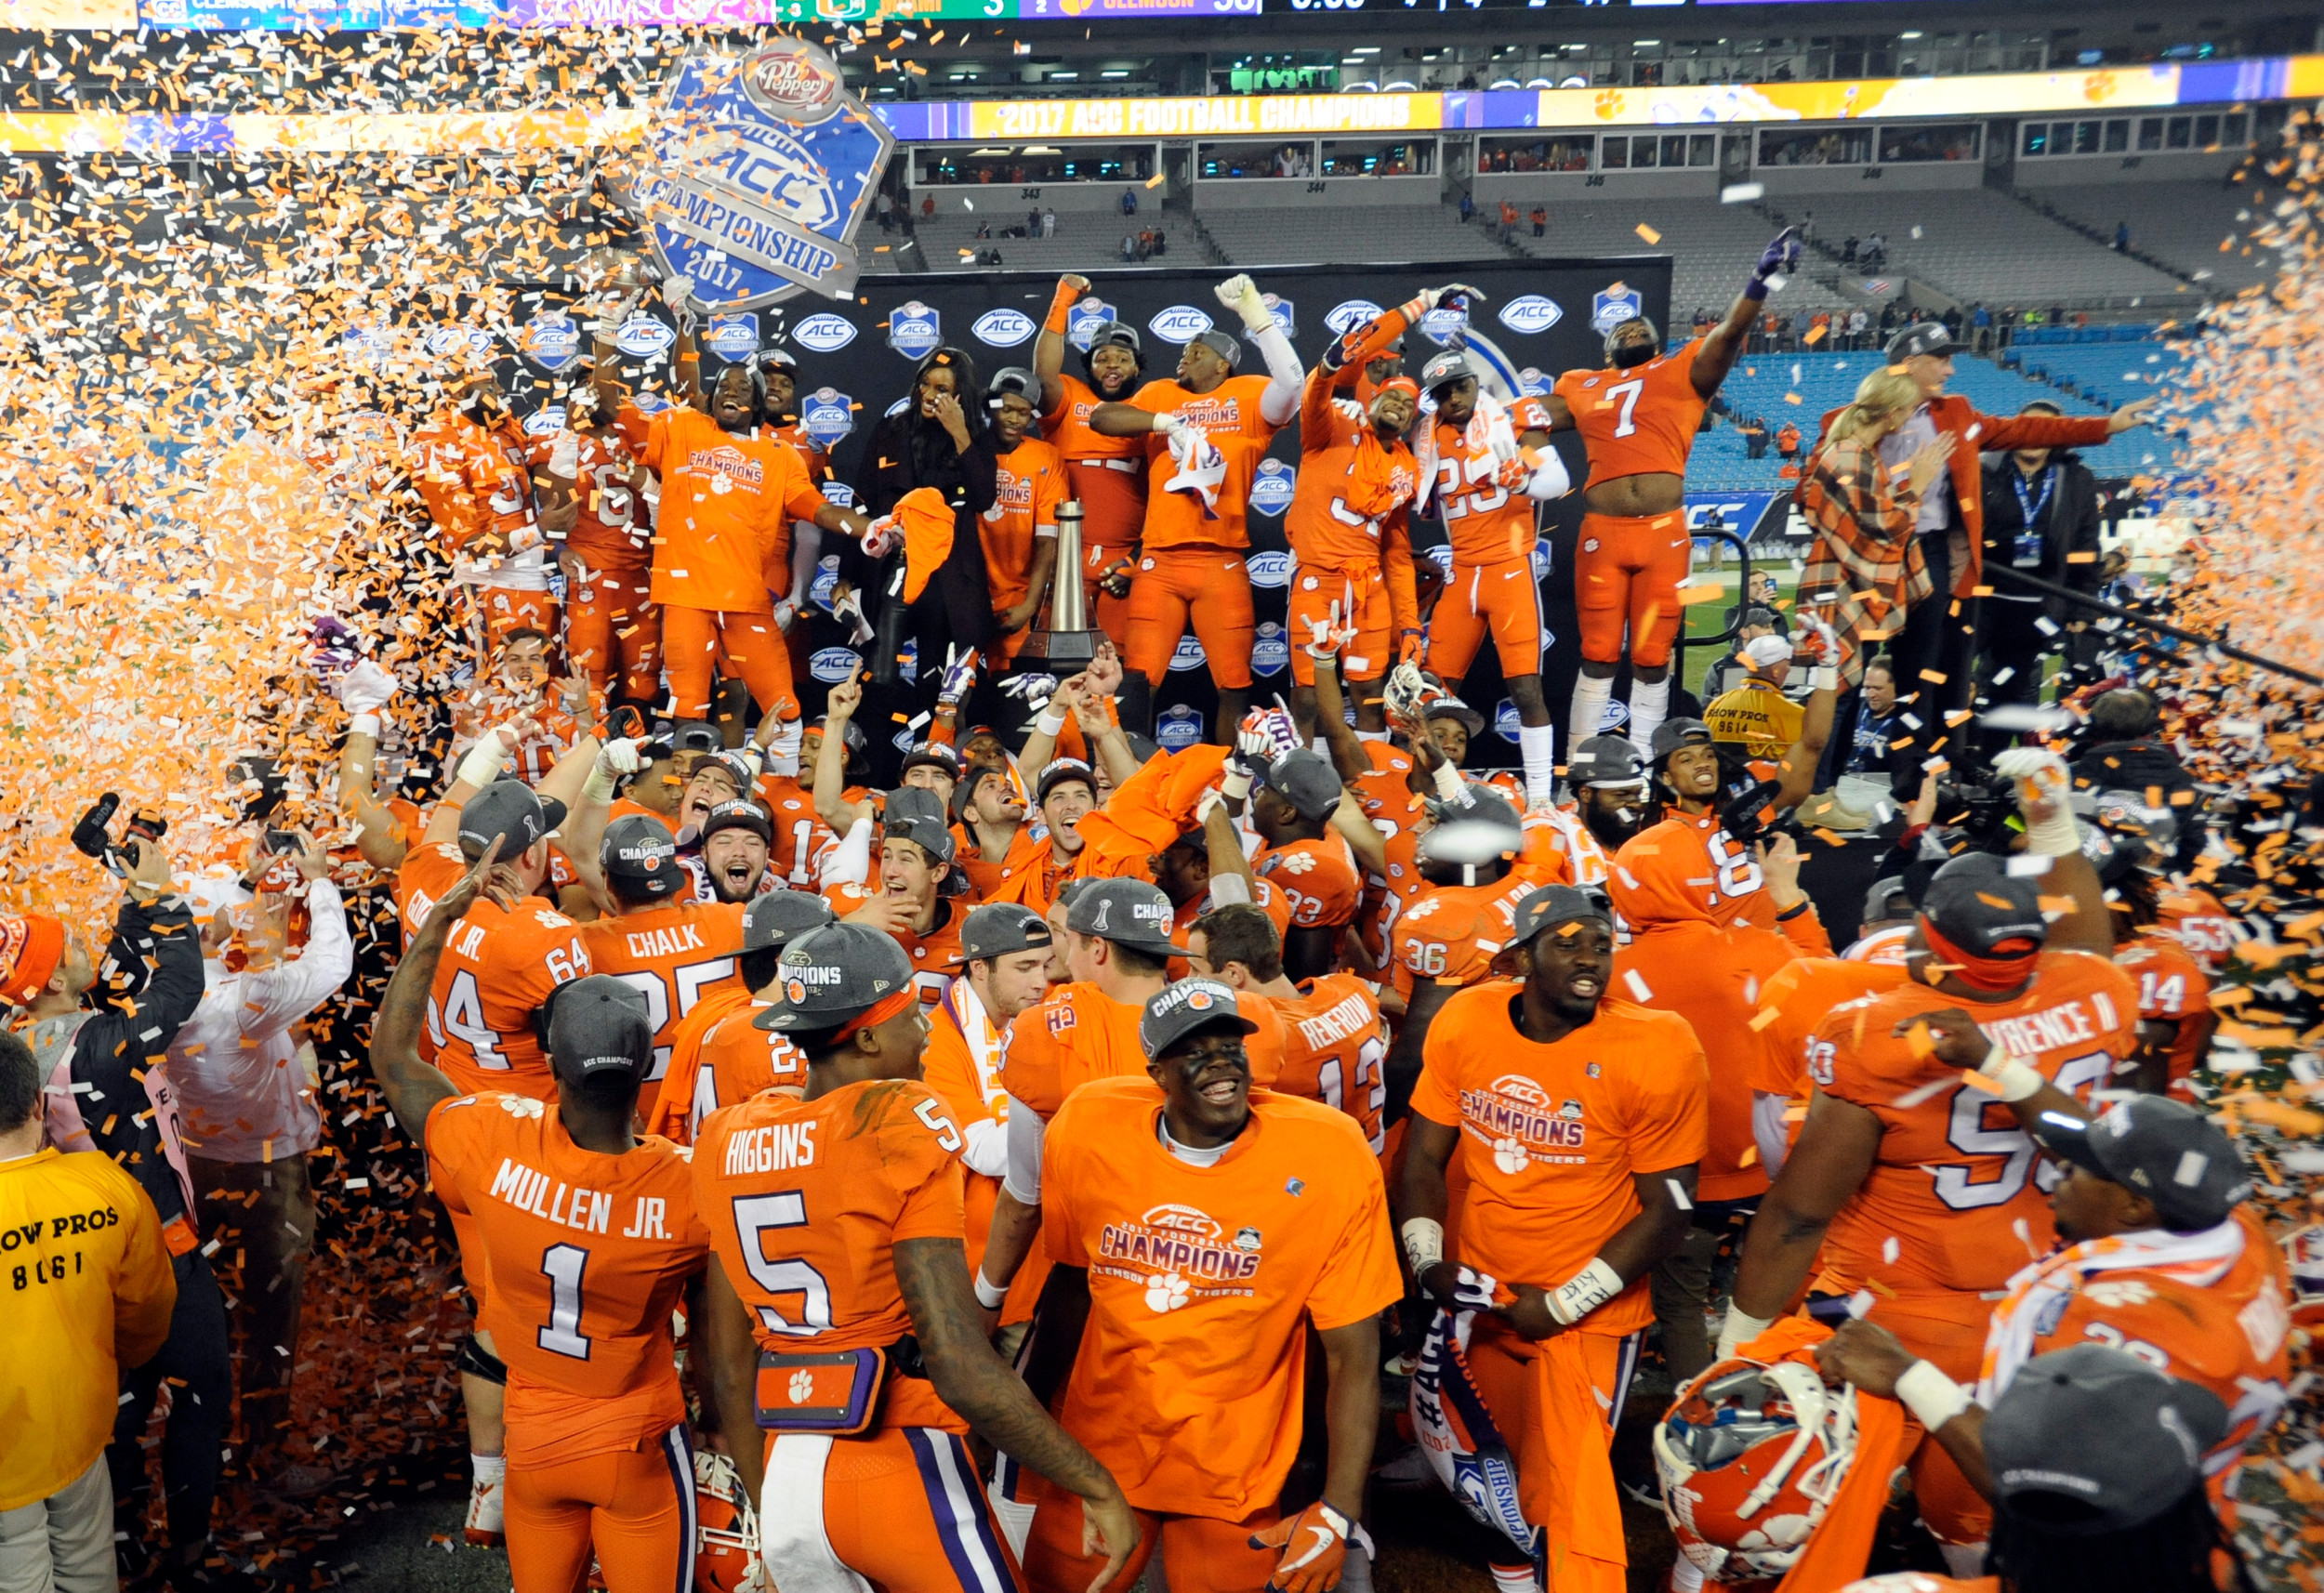 THE ASSOCIATED PRESSClemson players celebrate after winning the Atlantic Coast Conference championship game over Miami 38-3 on Saturday in Charlotte. The Tigers will meet Alabama for the third straight year in the College Football Playoff, this time in the Sugar Bowl in a semifinal game on Jan. 1.